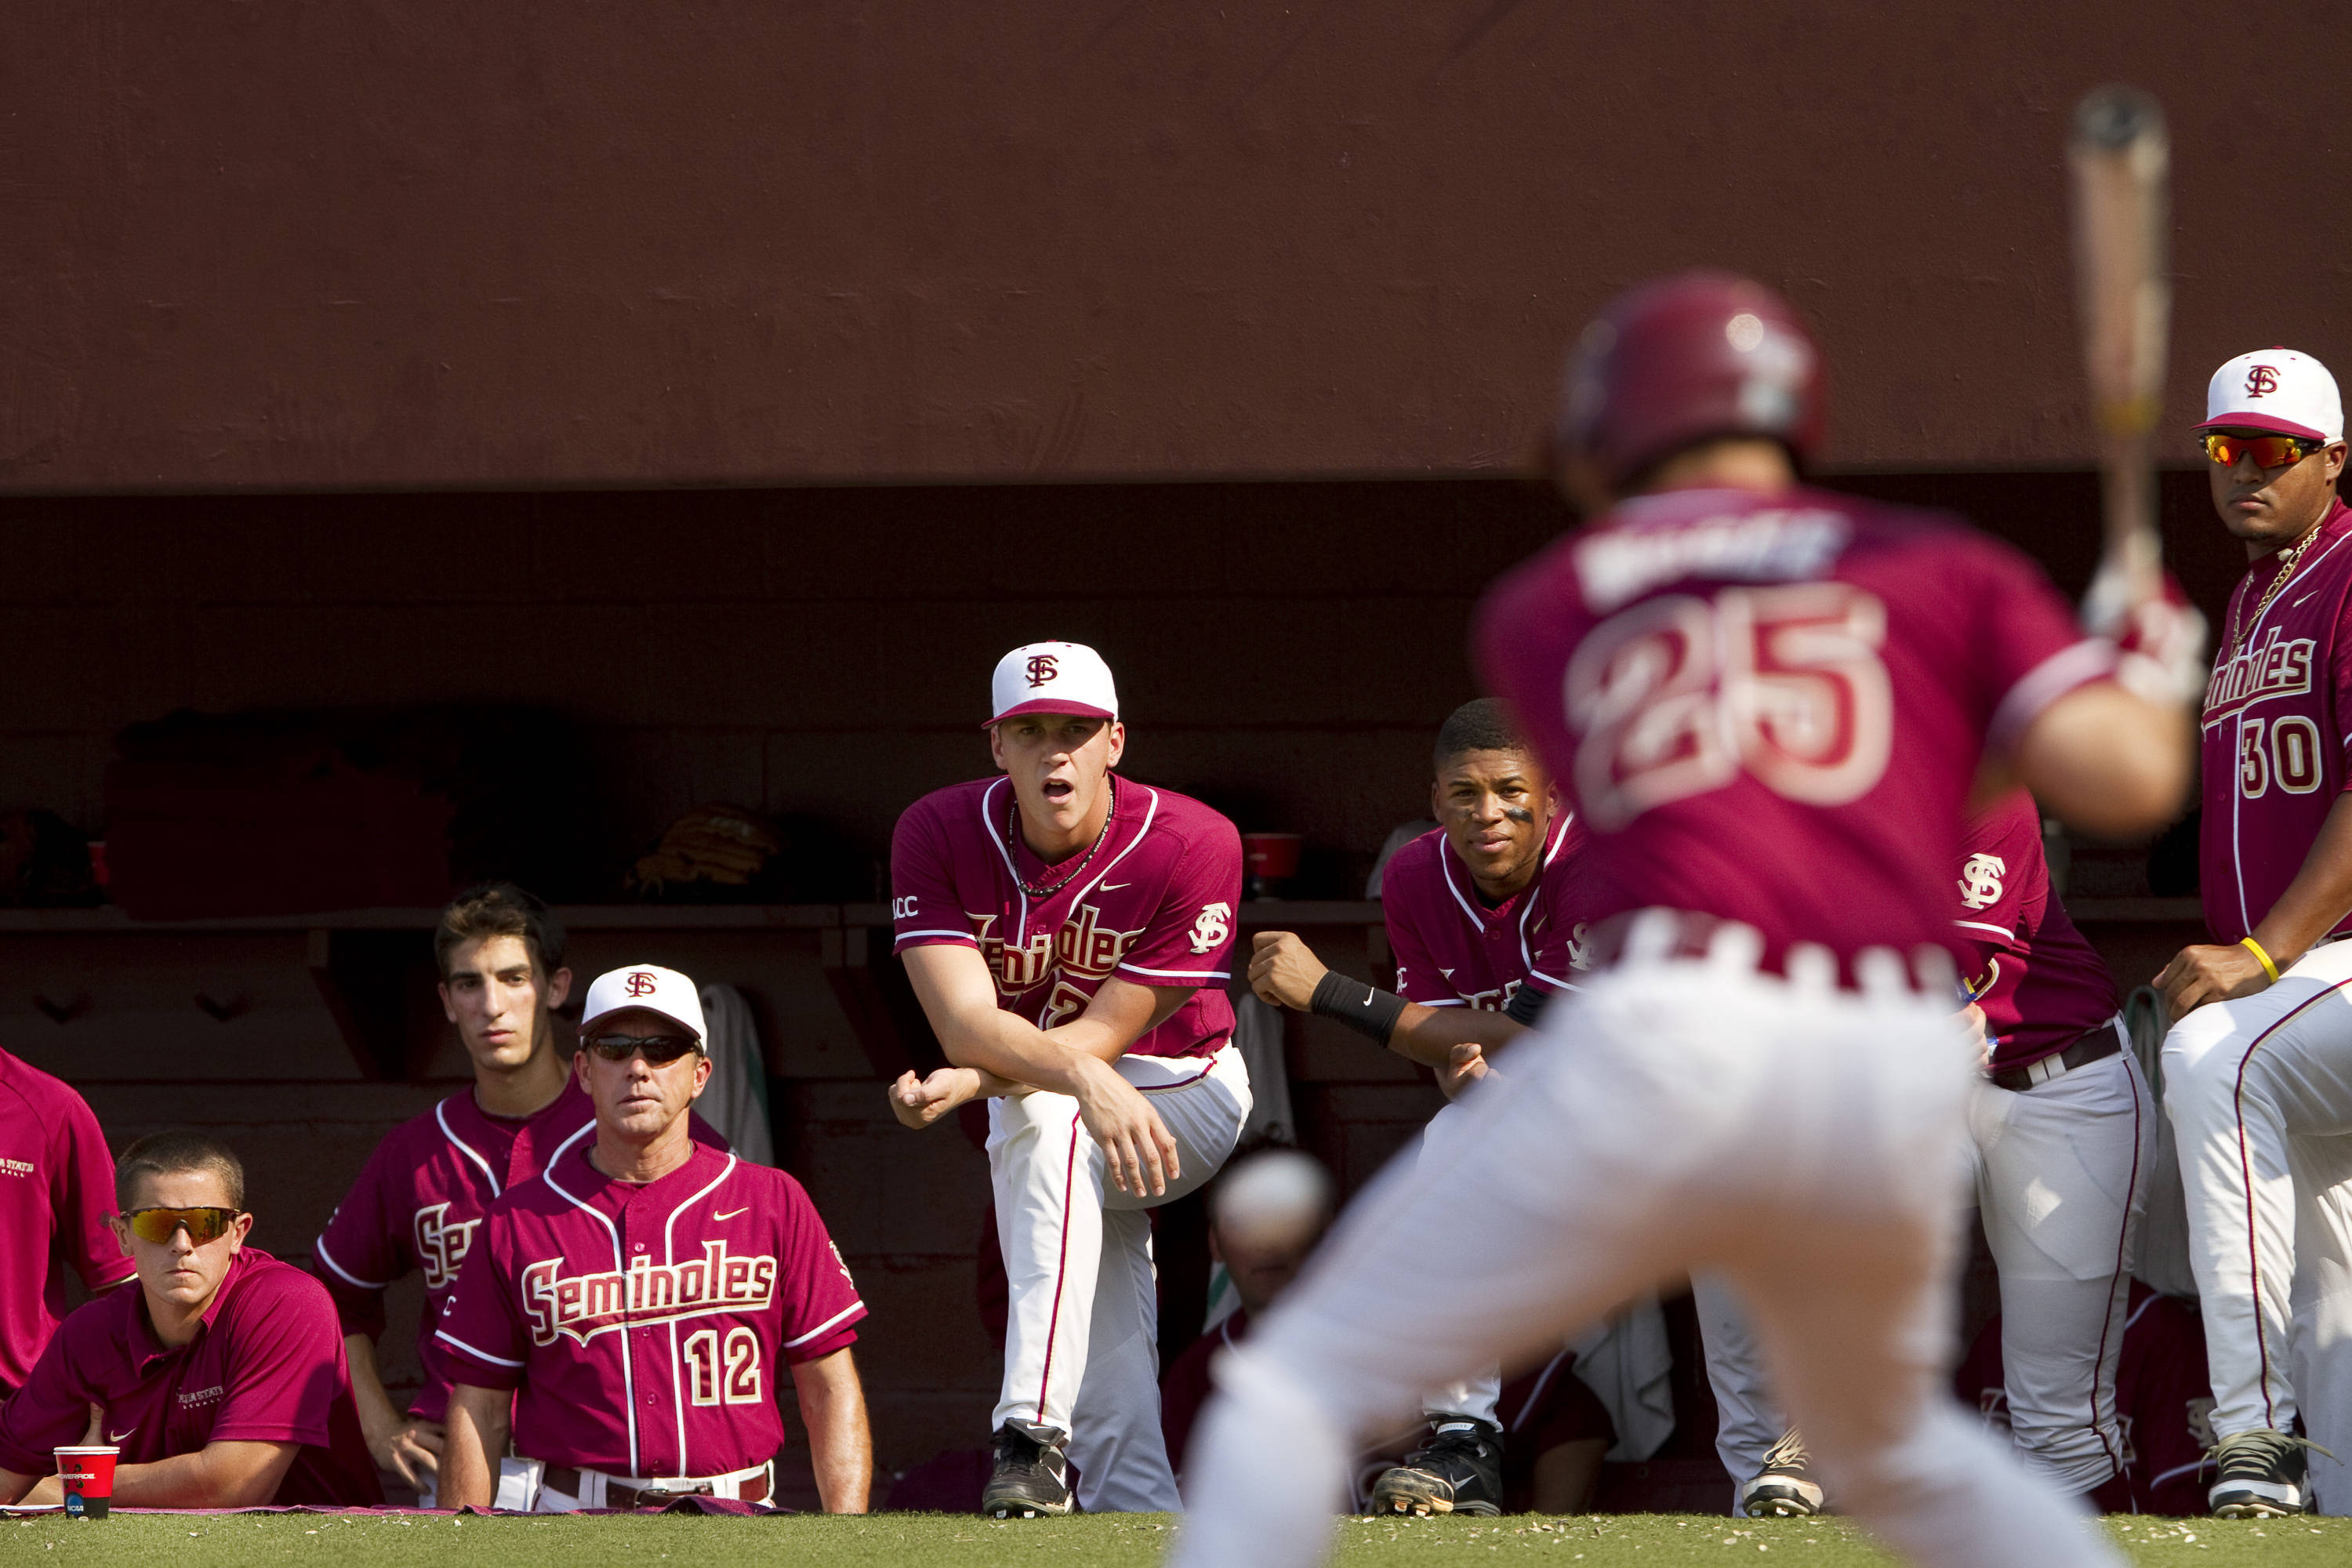 Teammates watch as Mike McGee (25) bats in the game against Texas A&M.